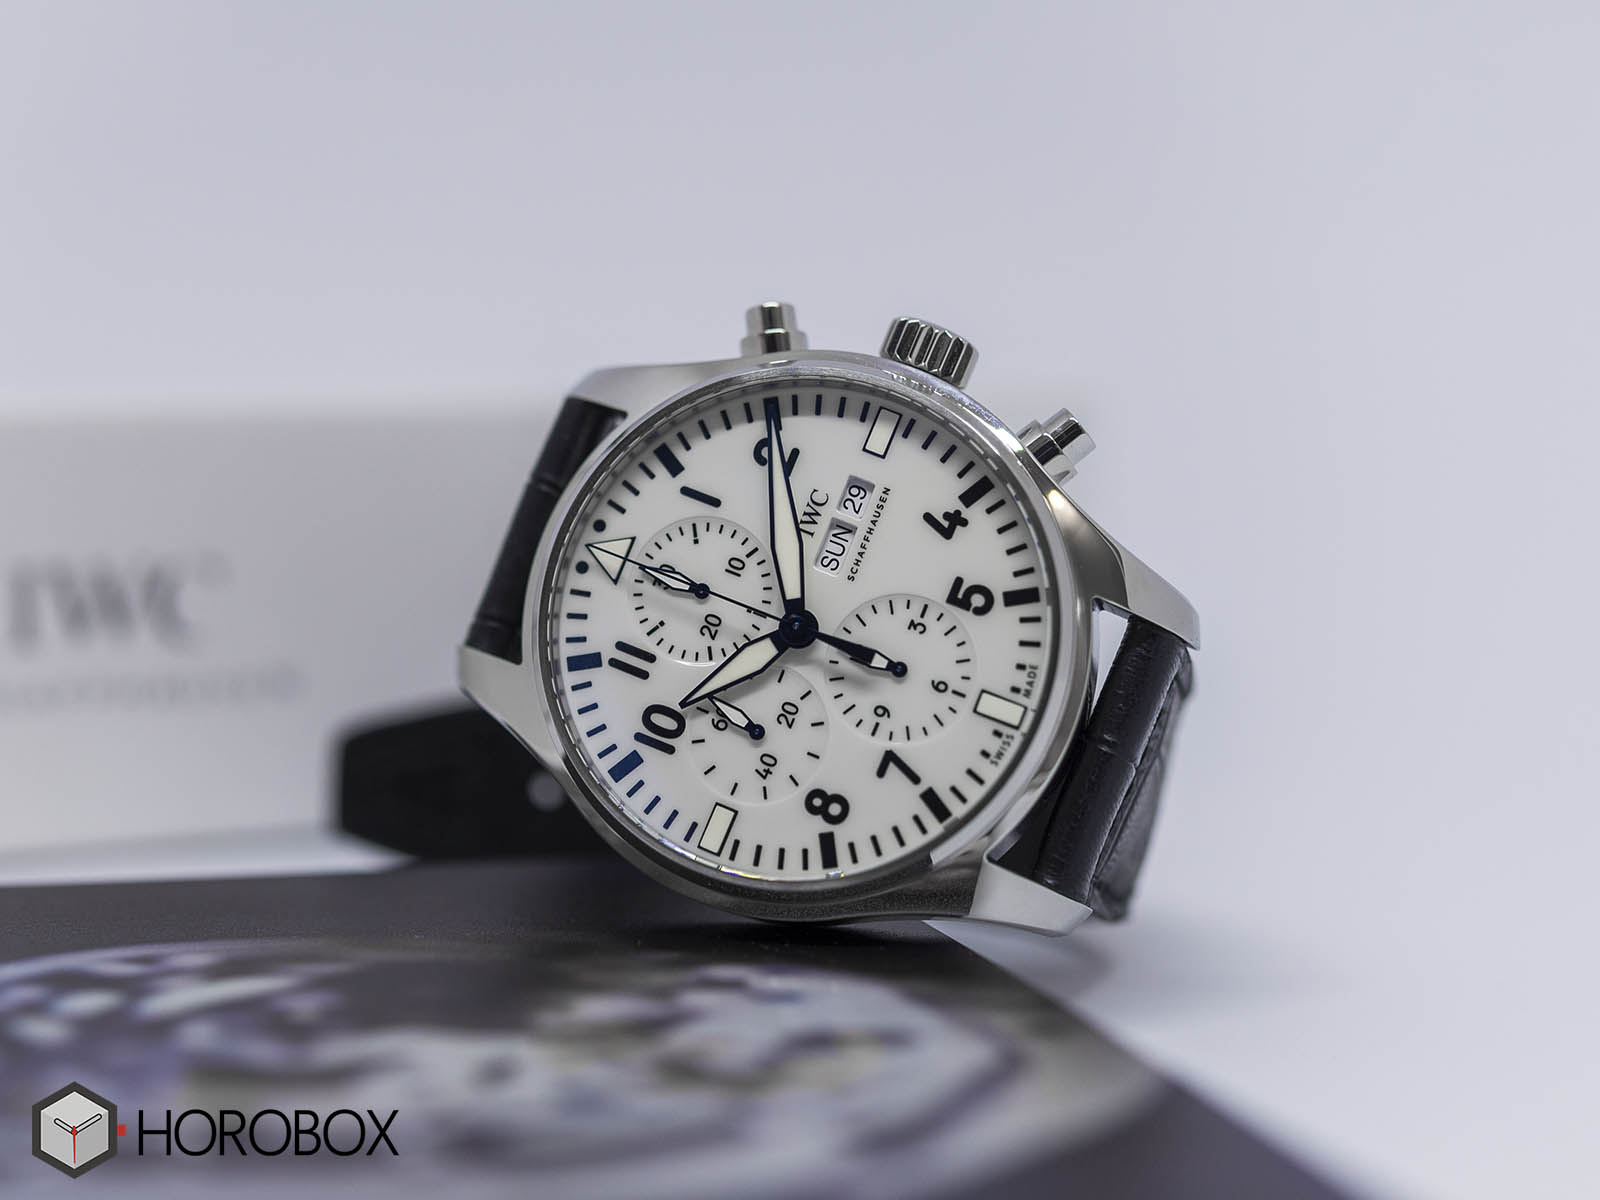 iw377725-iwc-pilots-watch-chronograph-150-5.jpg